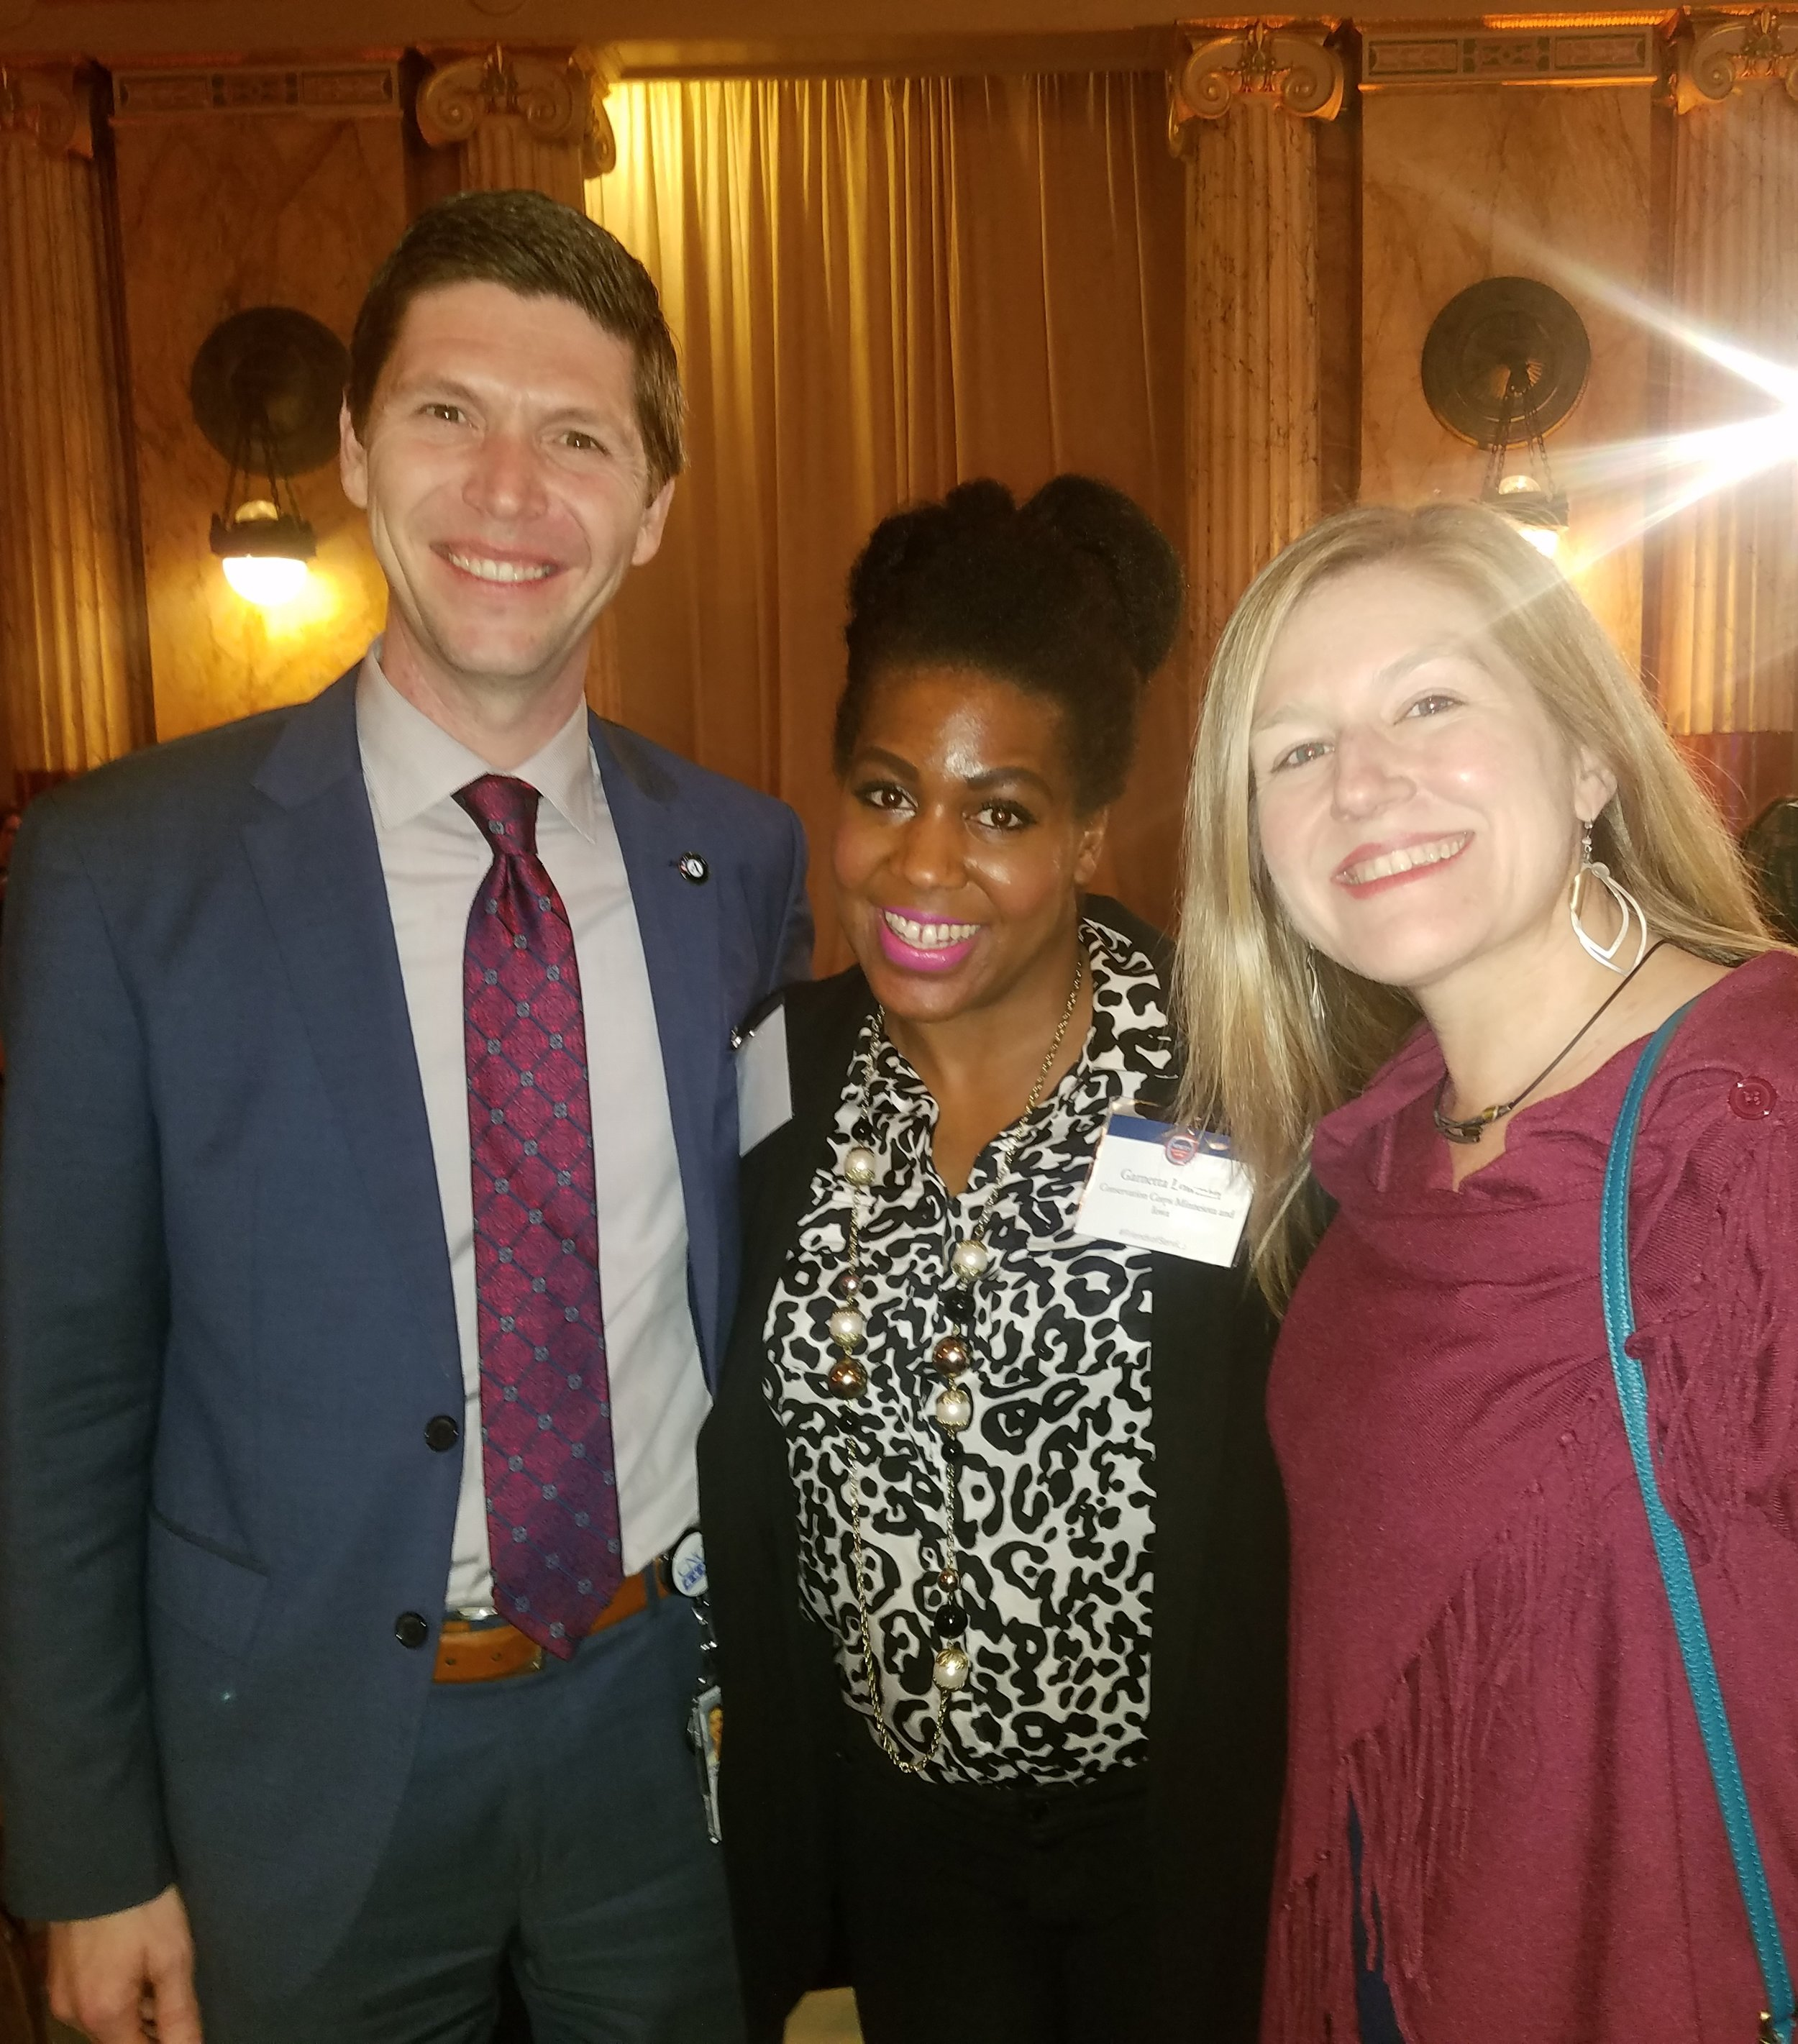 BUILDING CONNECTIONS: Director of AmeriCorps Chester Spellman, of the Corporation for National and Community Service, visited with staff during the Voices for National Service Awards event.